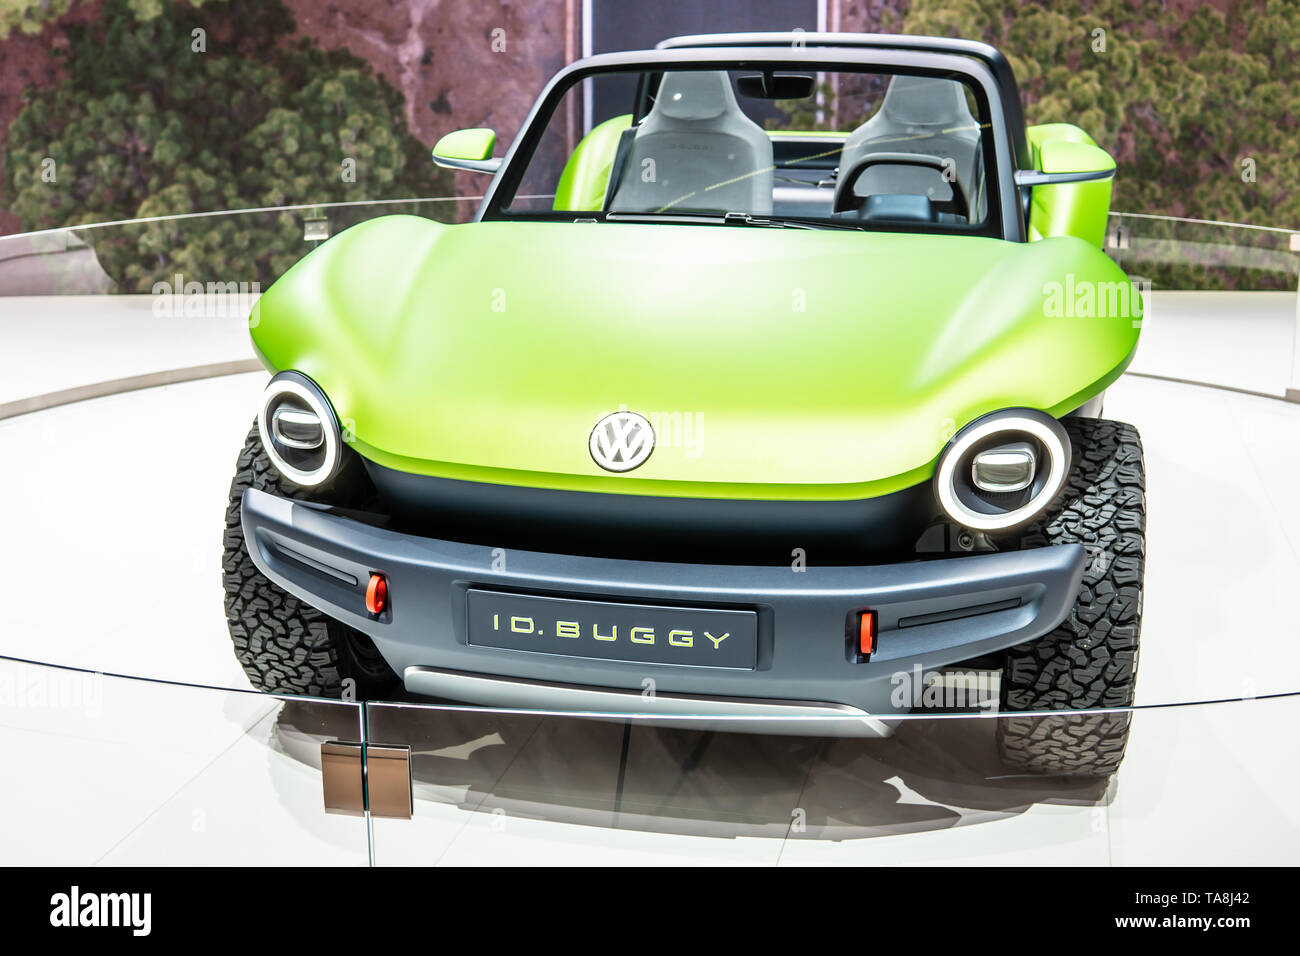 Geneva, Switzerland, March 07, 2019: Volkswagen VW ID Buggy Concept Prototype Car at Geneva International Motor Show, electric I.D. Buggy off-road car - Stock Image